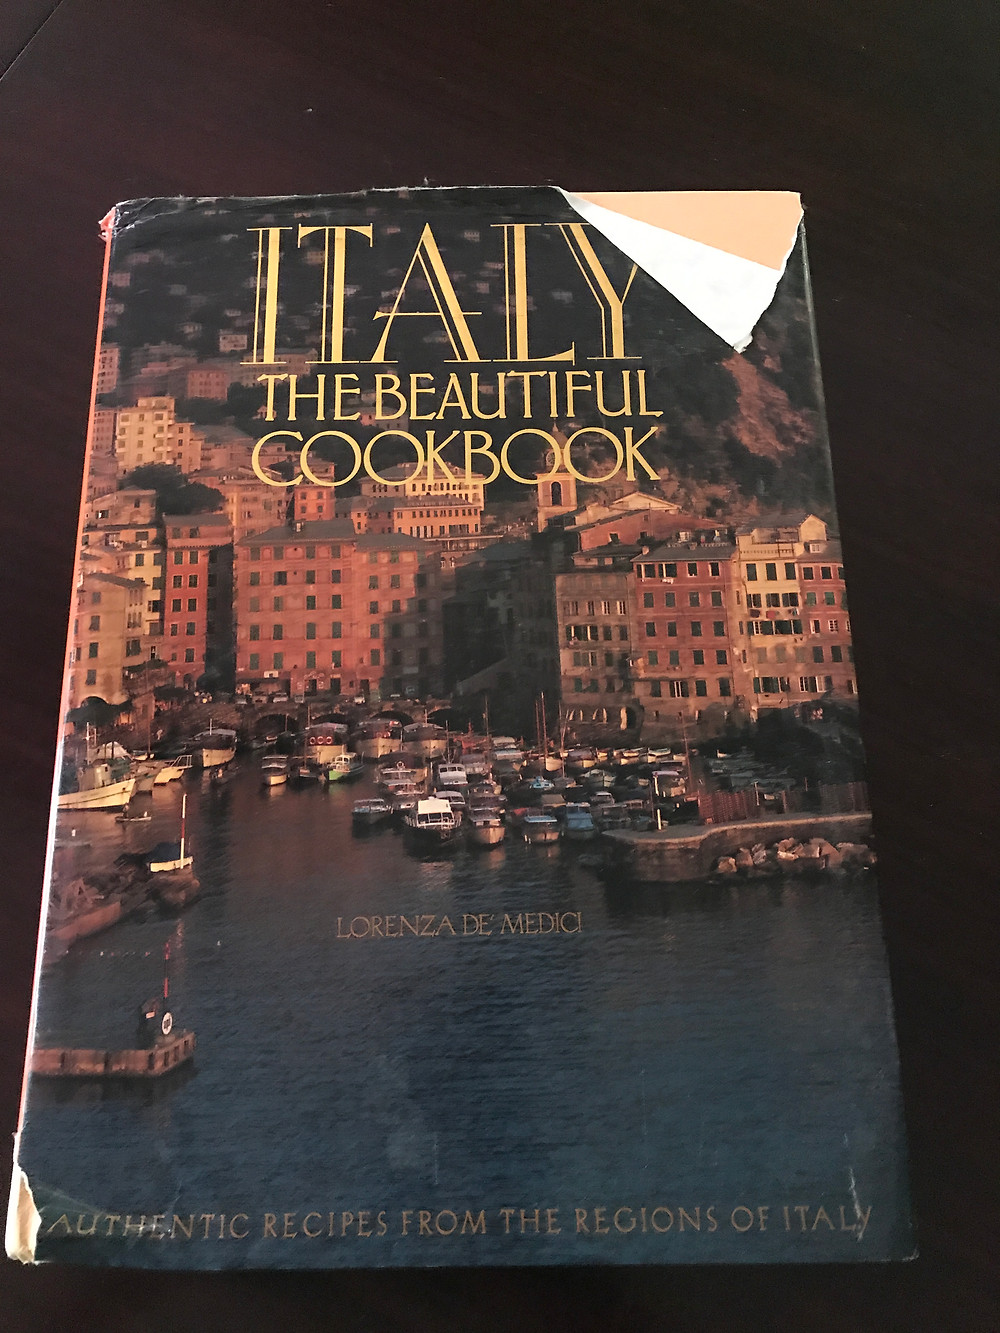 one of my favorite italian cookbooks